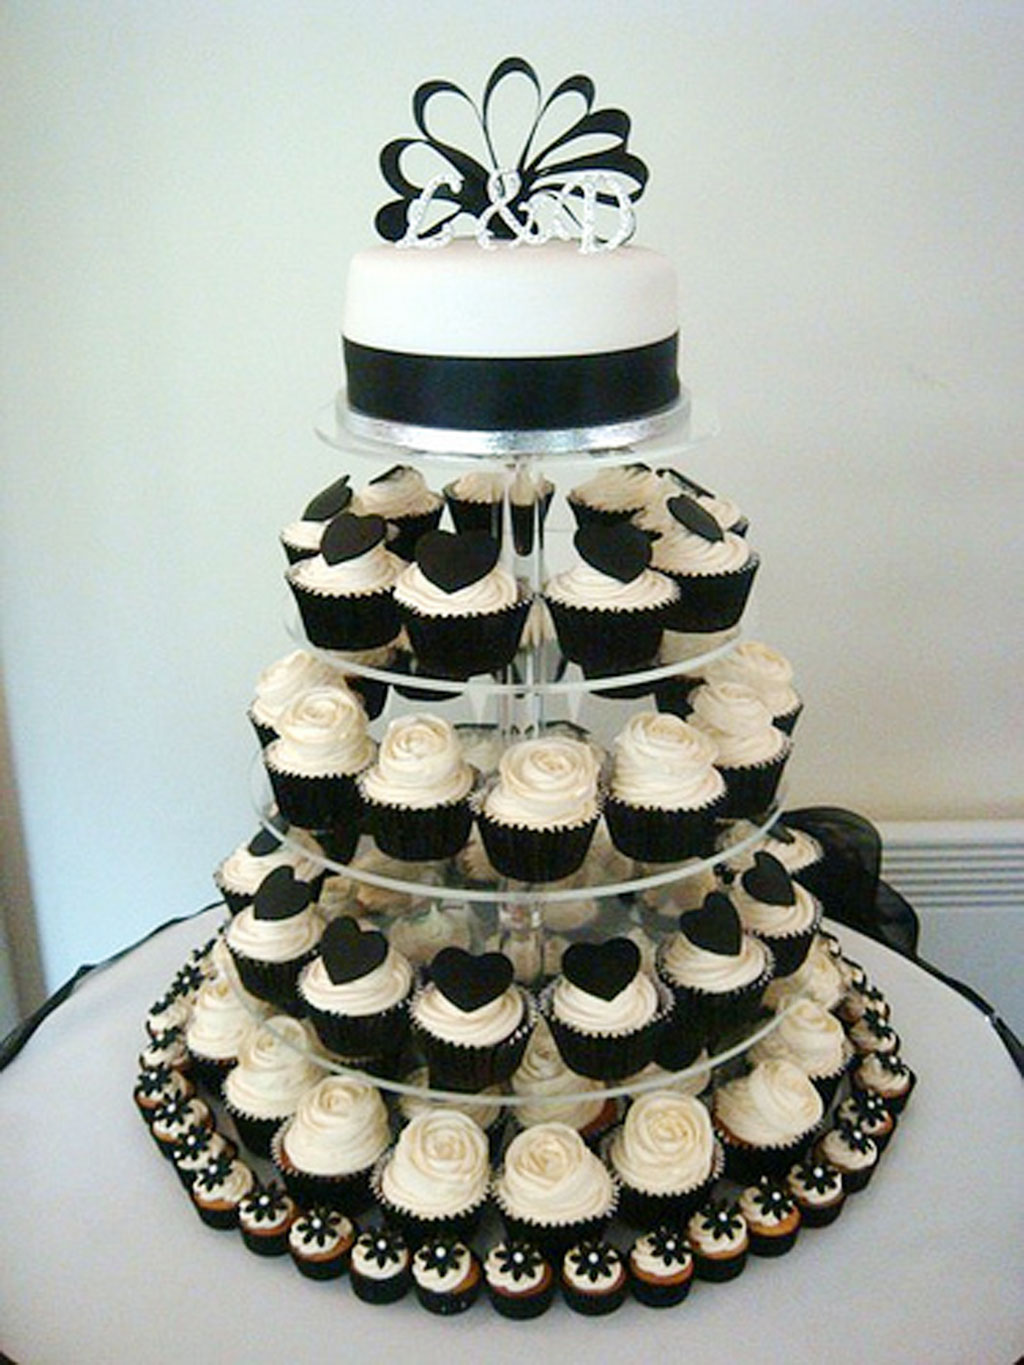 black and white wedding theme wedding cake cake ideas by. Black Bedroom Furniture Sets. Home Design Ideas